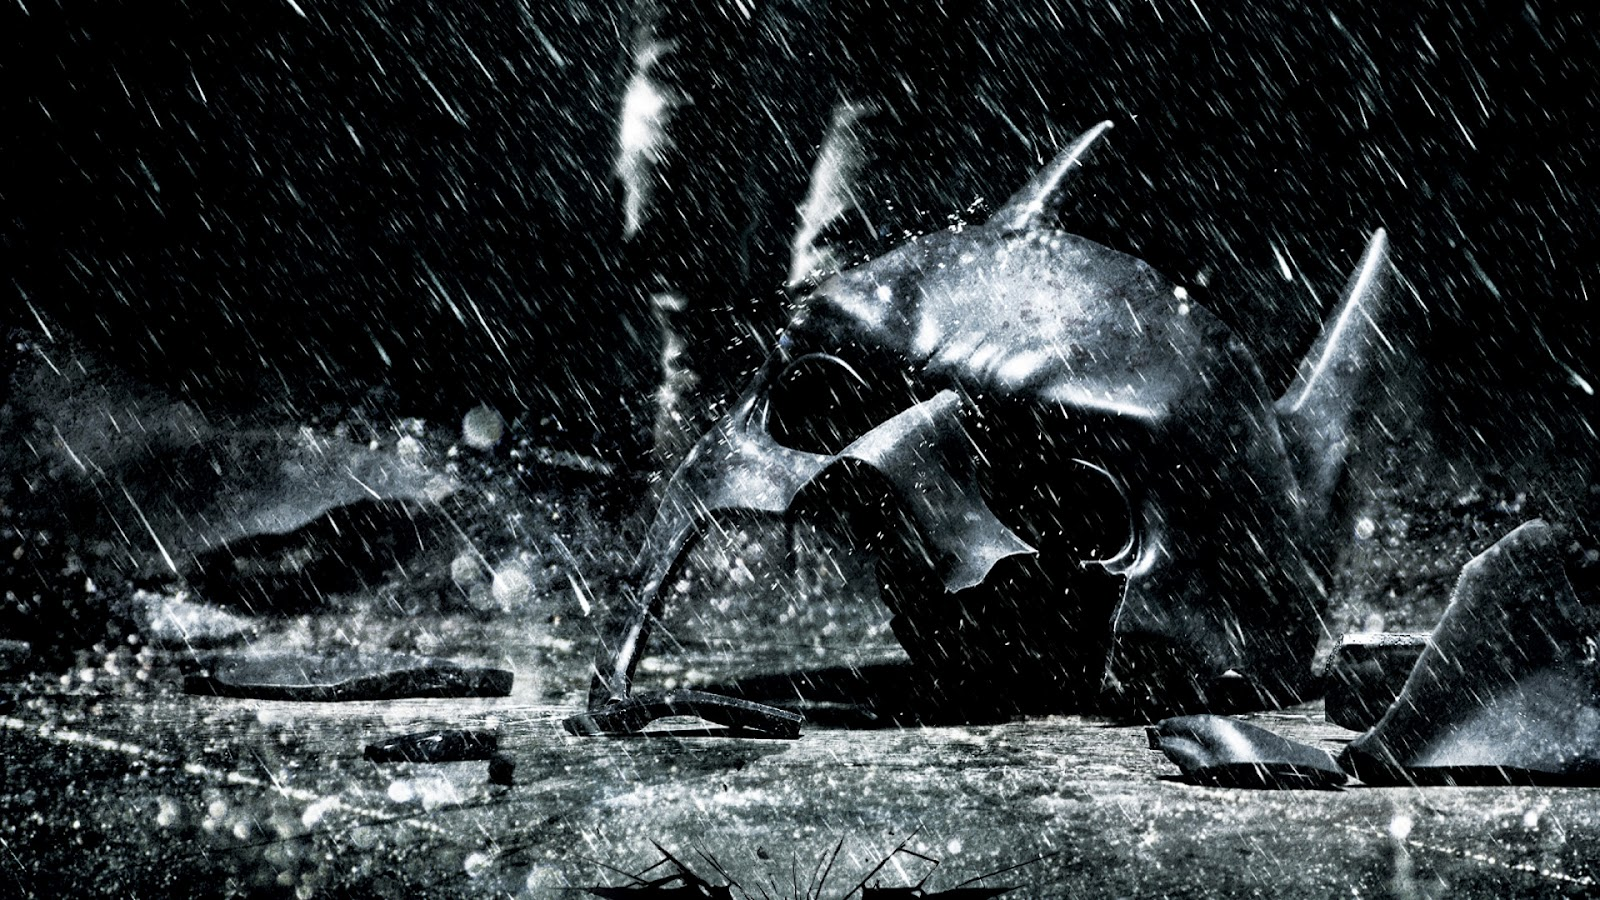 The Dark Knight Rises 02 1920x1080 New Movies Wallpapers 1600x900